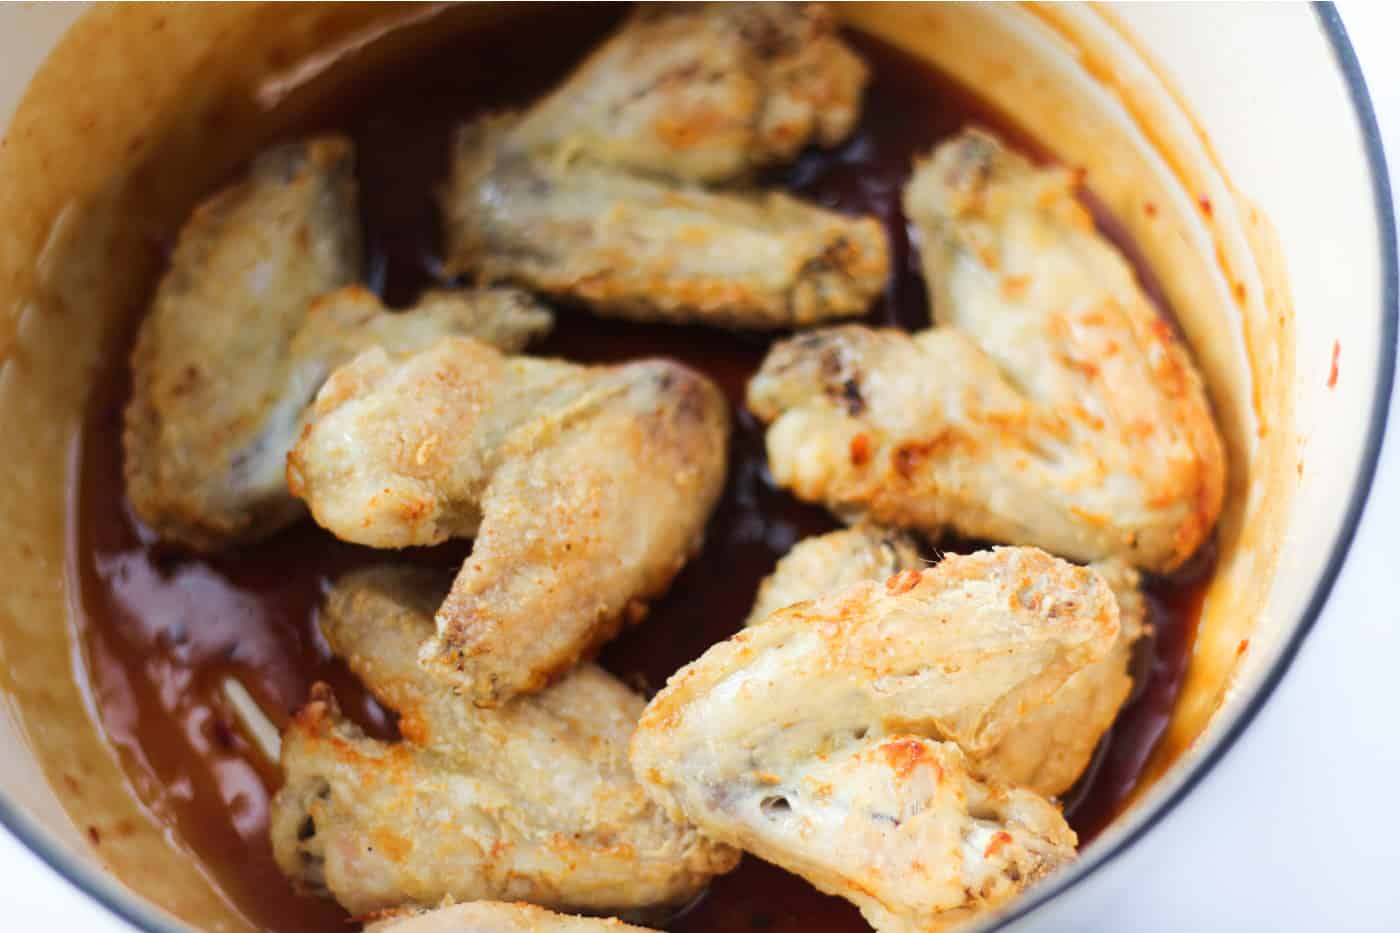 cooked breaded chicken wings in a bowl of sauce